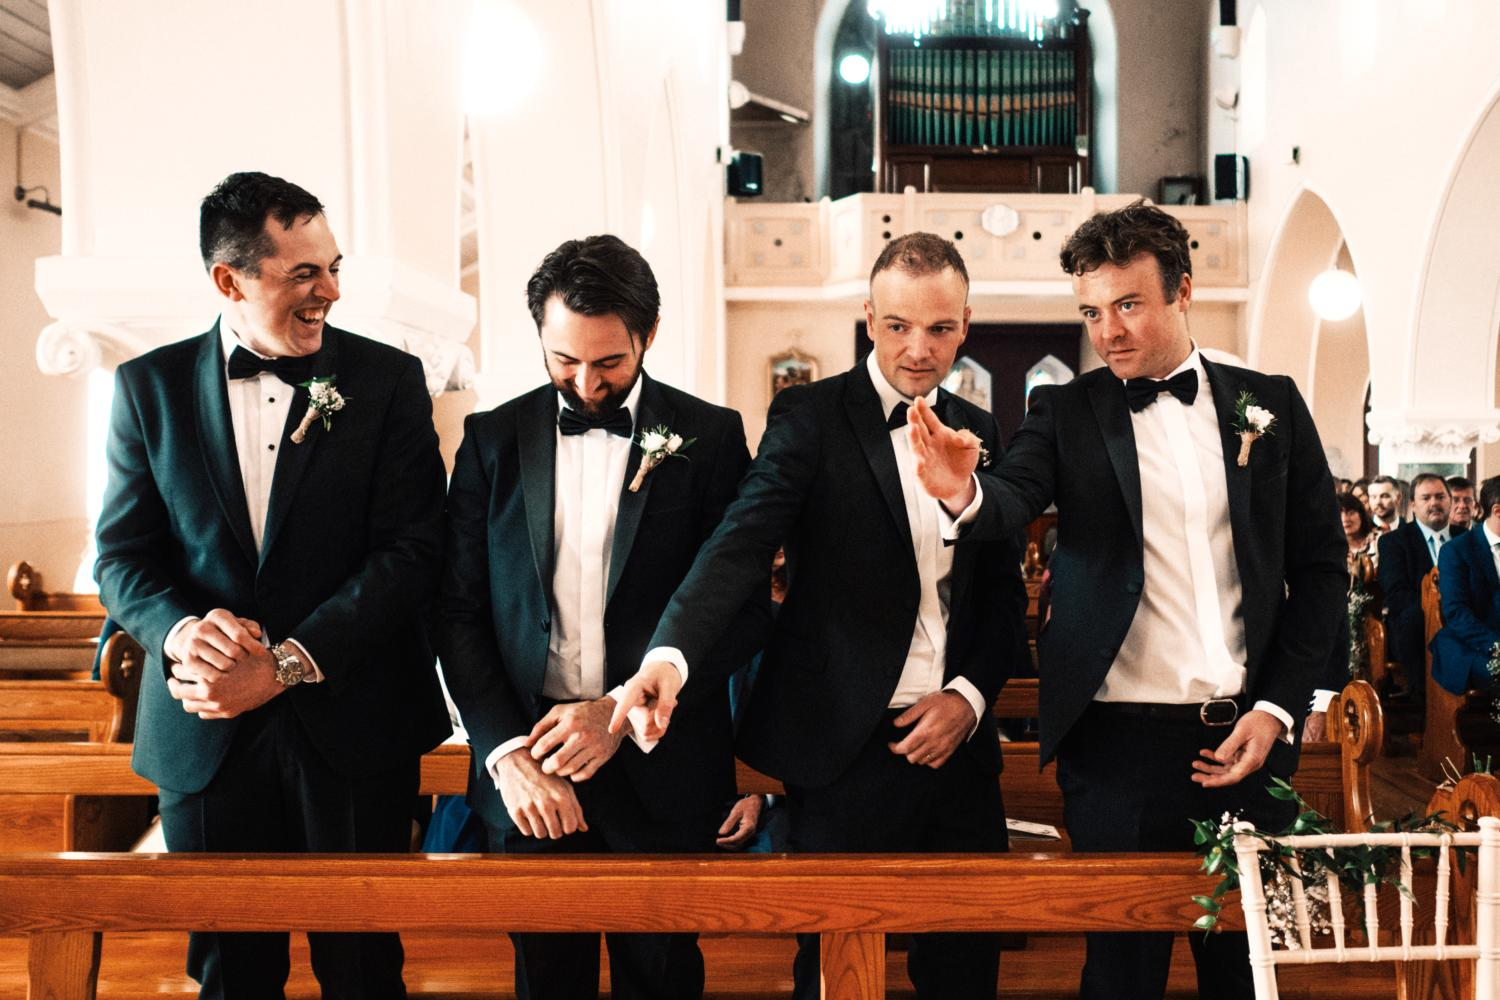 A groom and groomsmen wear tuxedos in a Catholic chapel